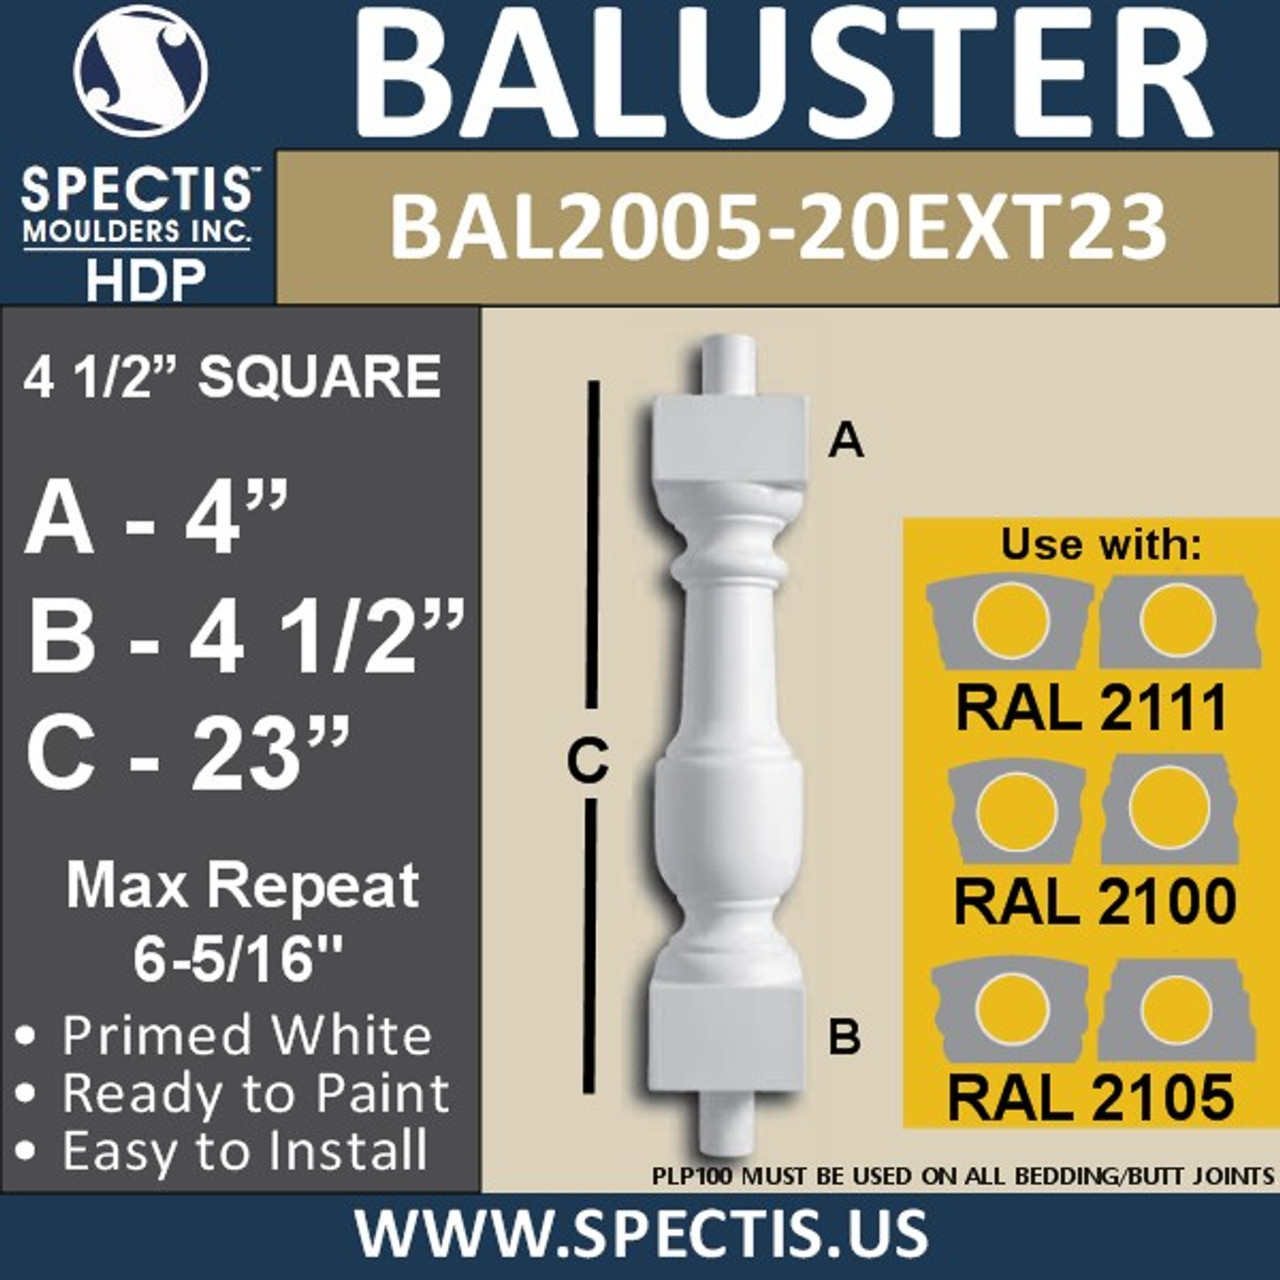 "BAL2005-20EXT23 Urethane Baluster or Spindle 4 1/2""W X 23""H"